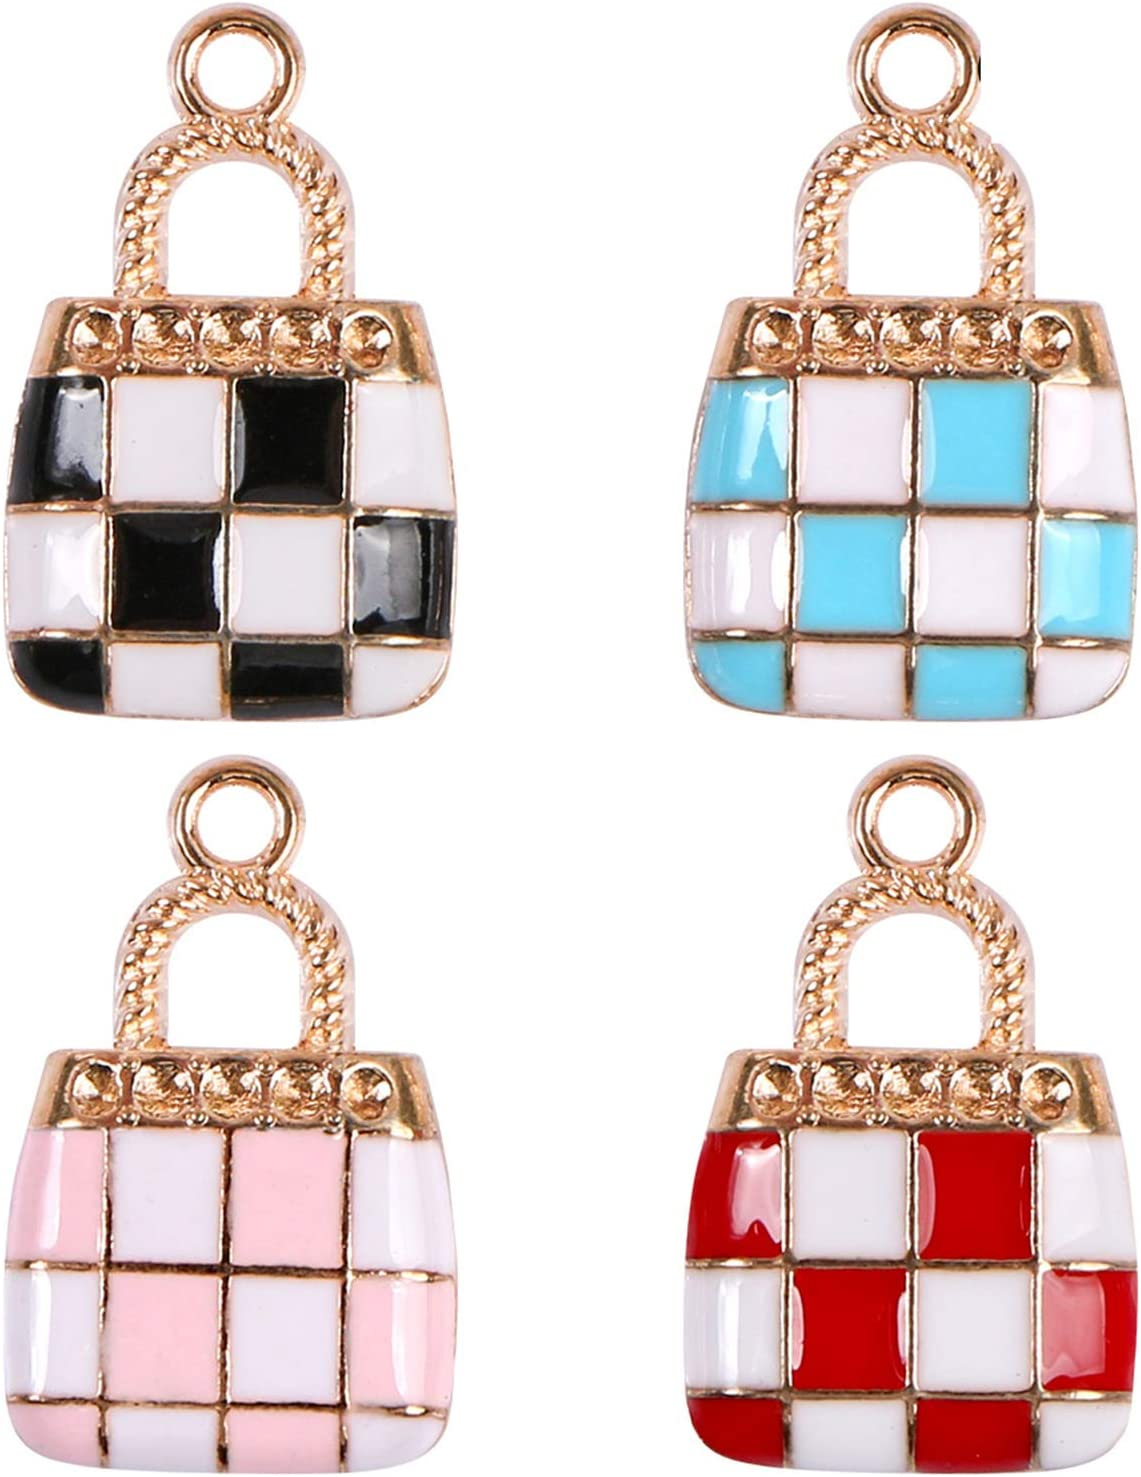 Purse Charms Pendants, BENBO 40Pcs Fashion Gold Plated Enamel Women Makeup Purse Charms Pendant Jewelry Findings for DIY Necklace Bracelet Earring Jewelry Making